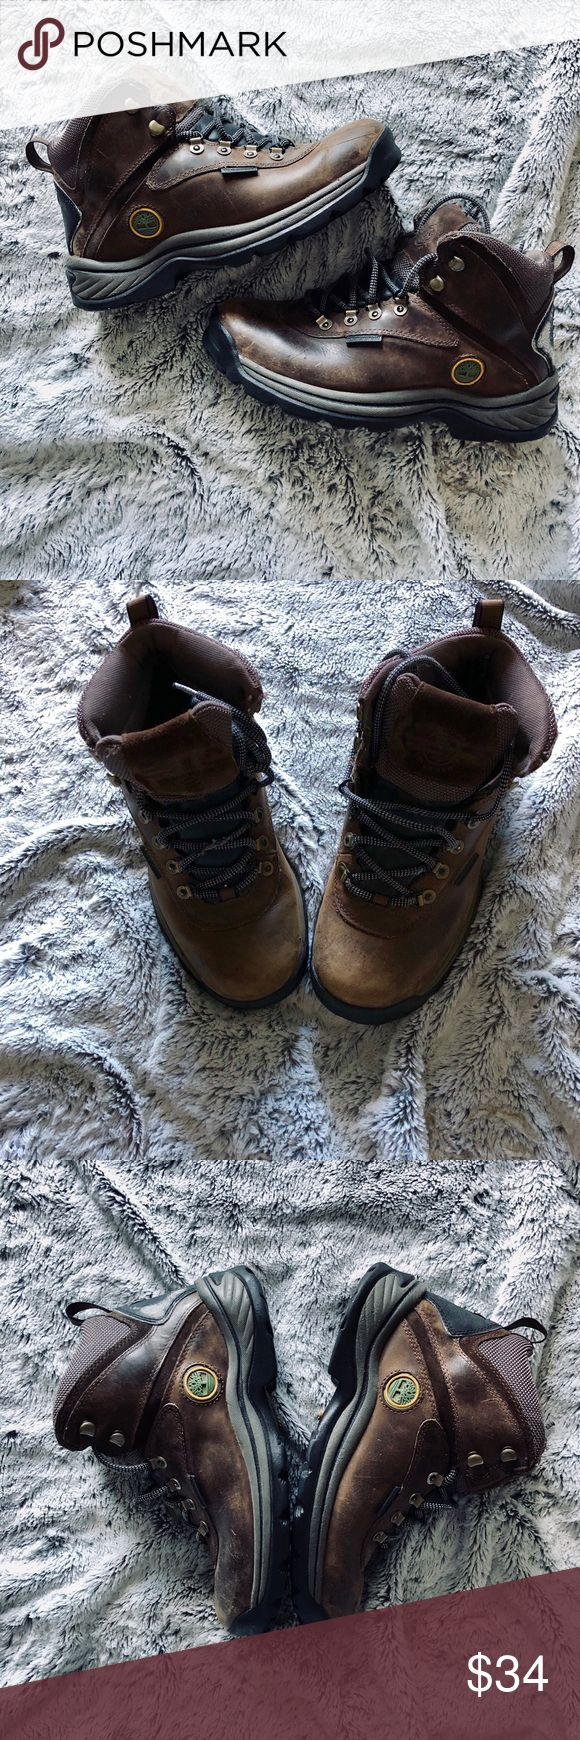 ⭐️SALE! Timberland Flume Waterproof Boots Timberland Flume Waterproof Boots Size 7.5M Perfect for Outdoors Great Condition Timberland Shoes Boots